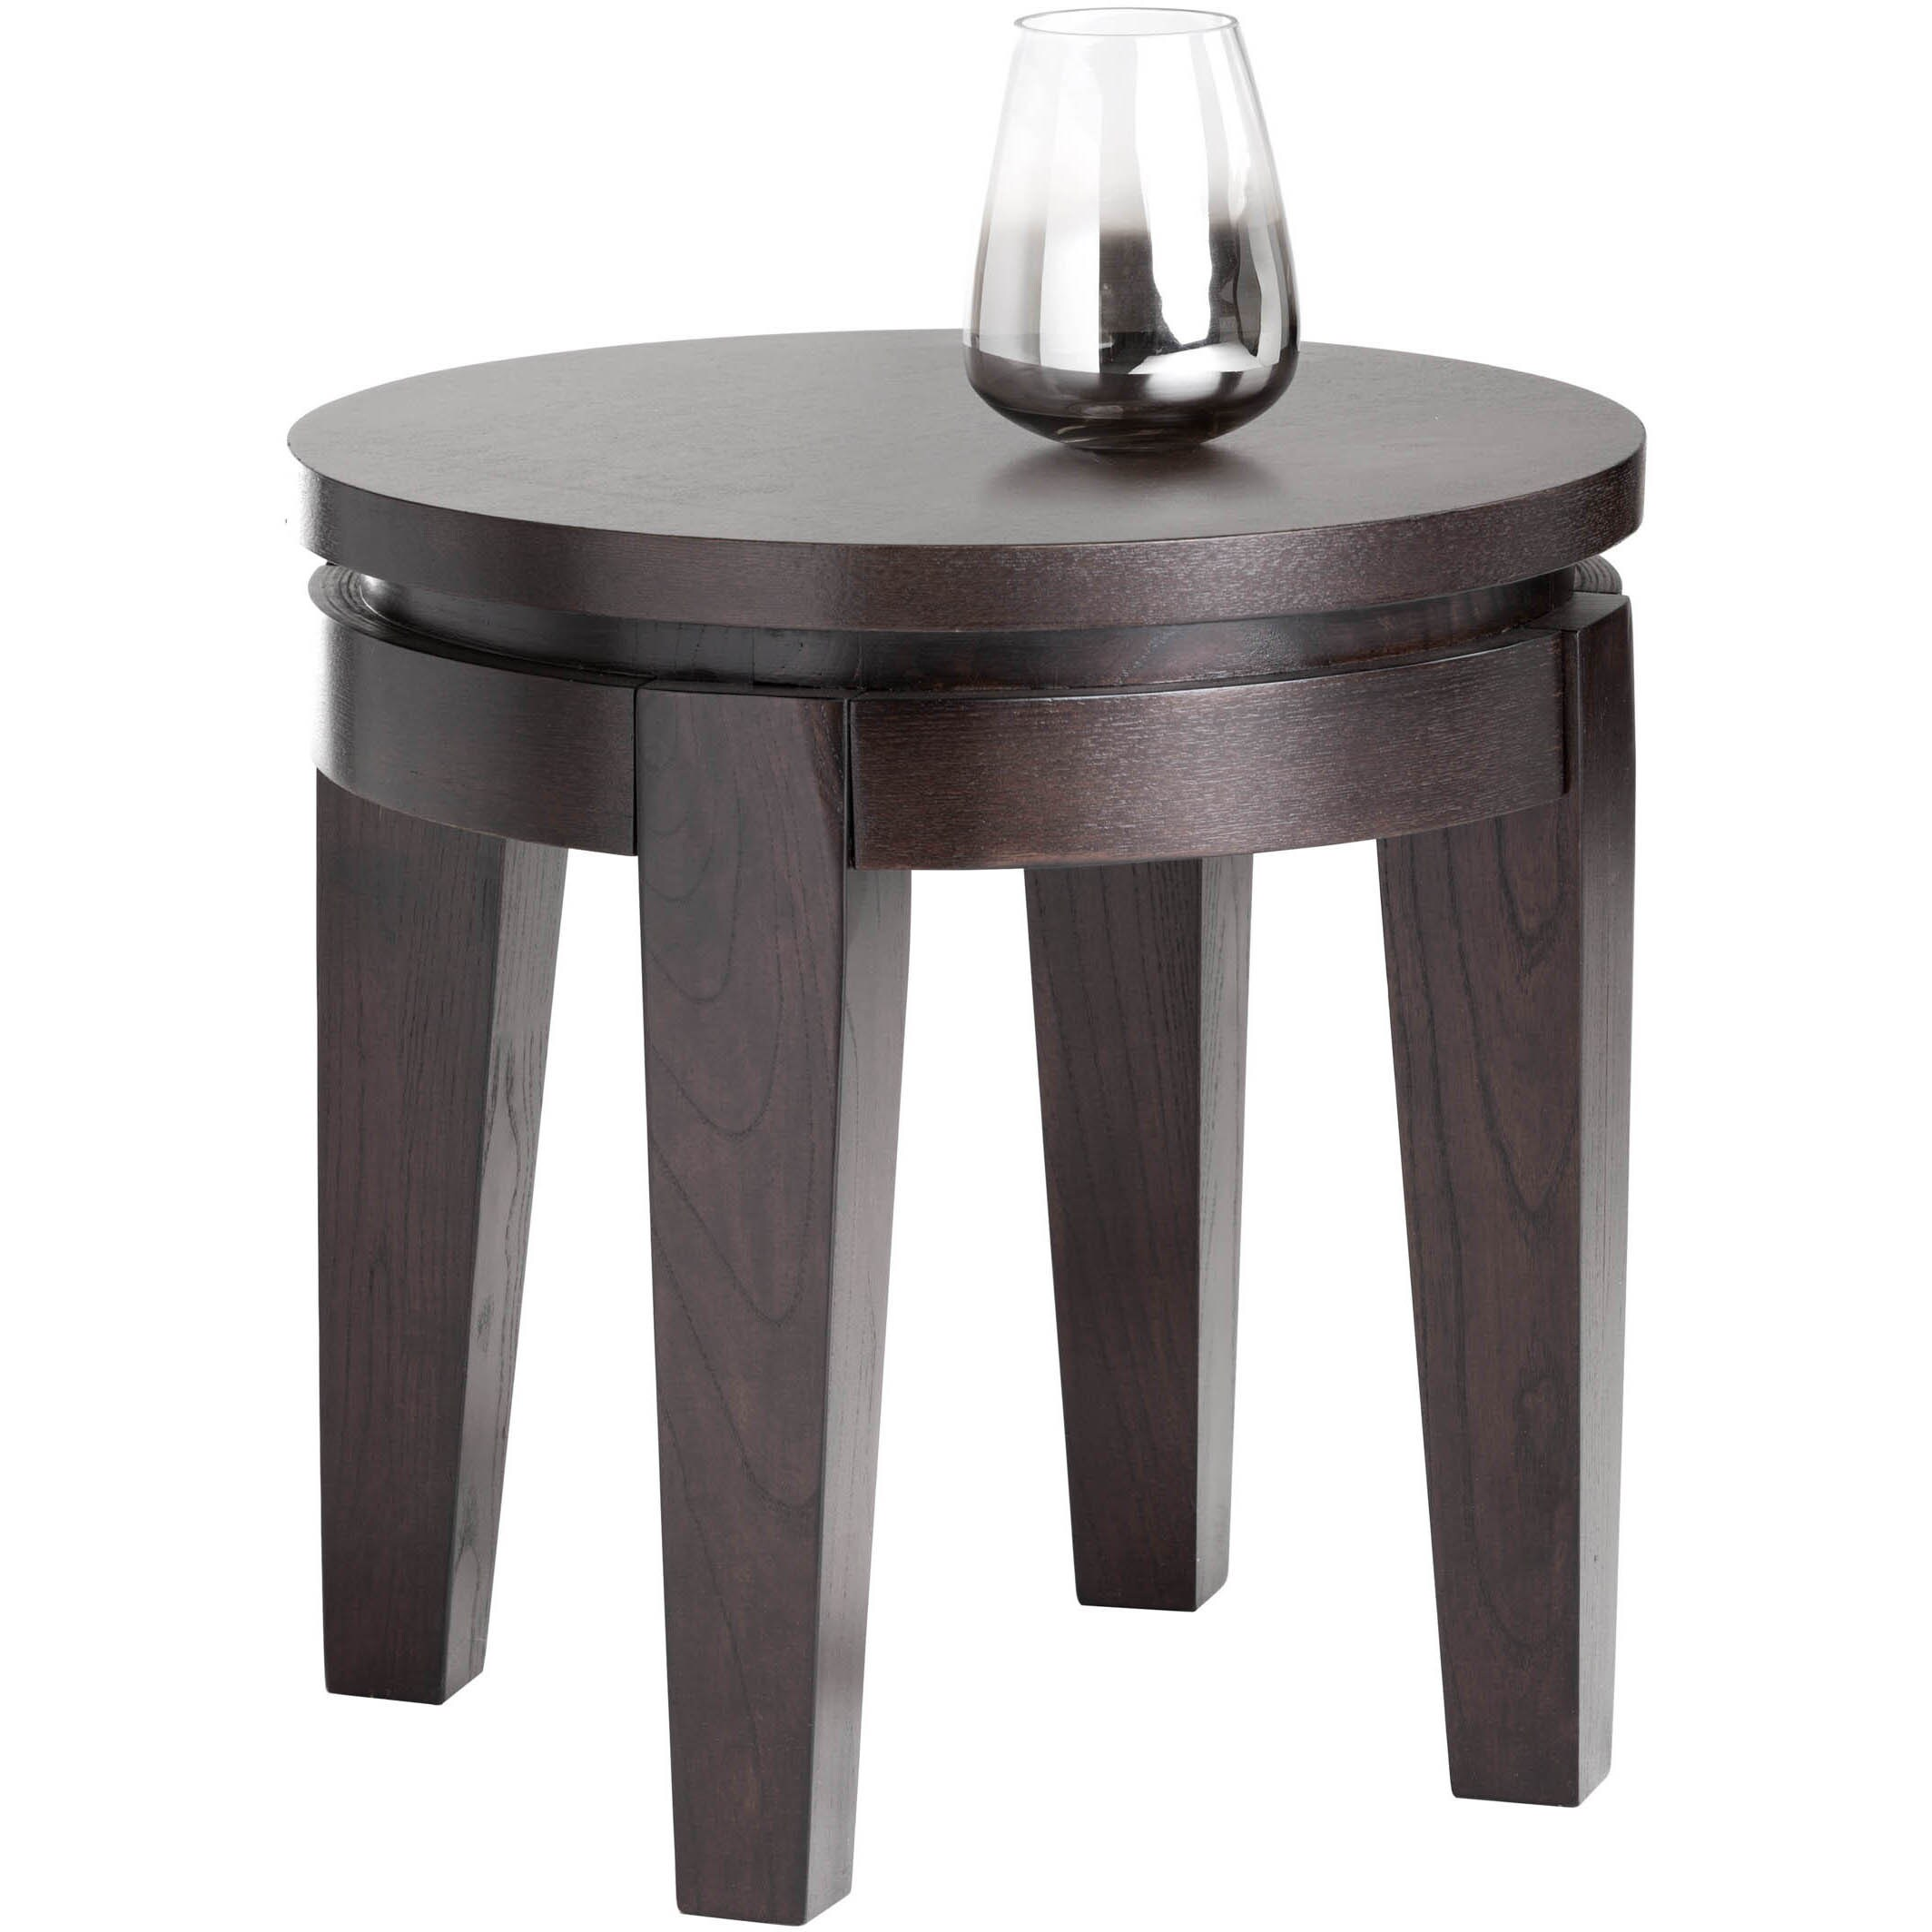 sunpan ikon asia round espresso end table free shipping today ashley furniture south shore average side height red bedside bathroom cabinets over toilet replacement top for